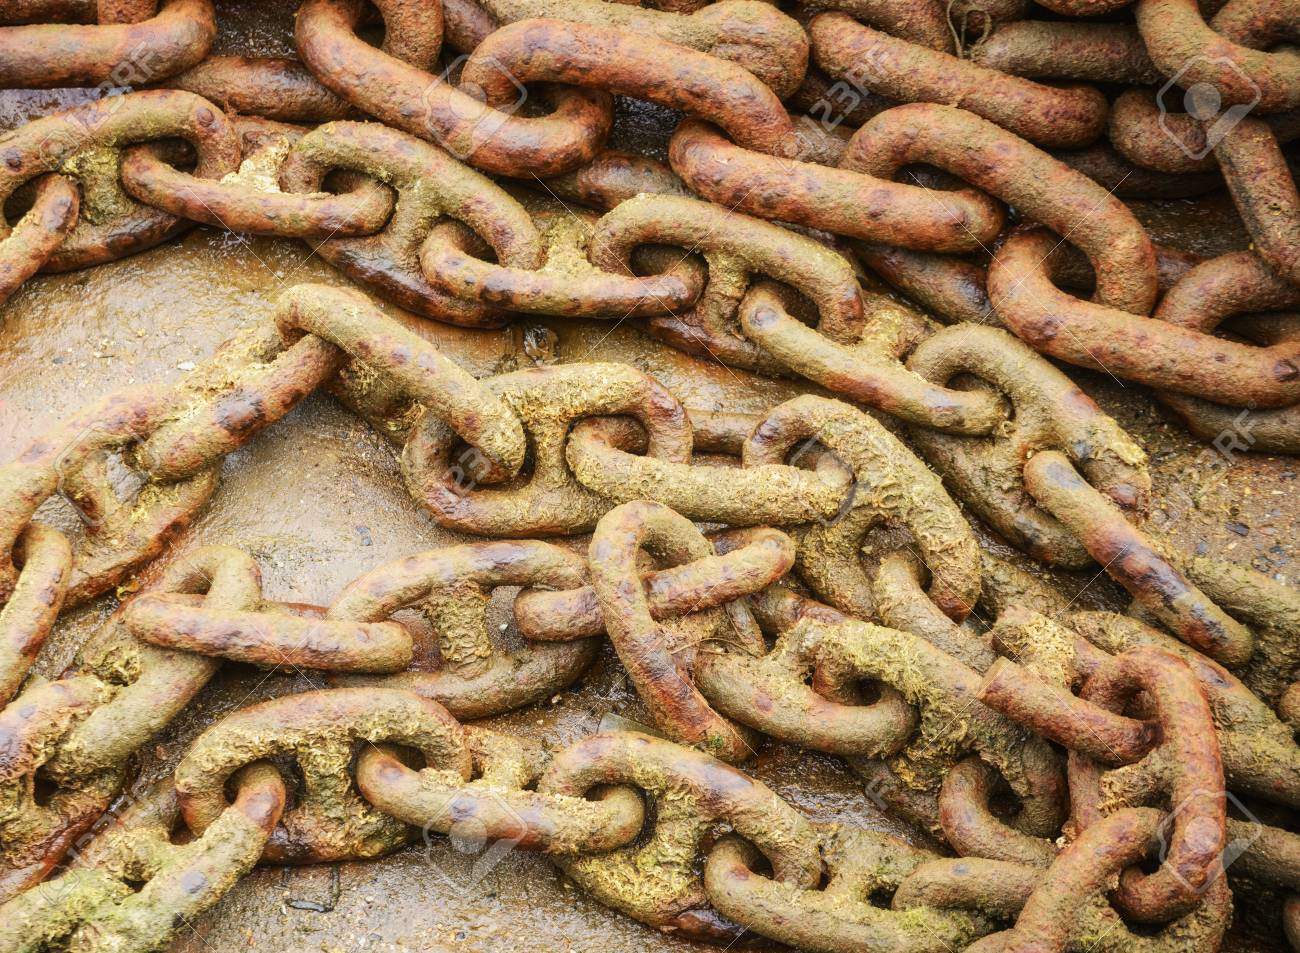 Detail of large rusty chain at harborside Stock Photo - 16877078